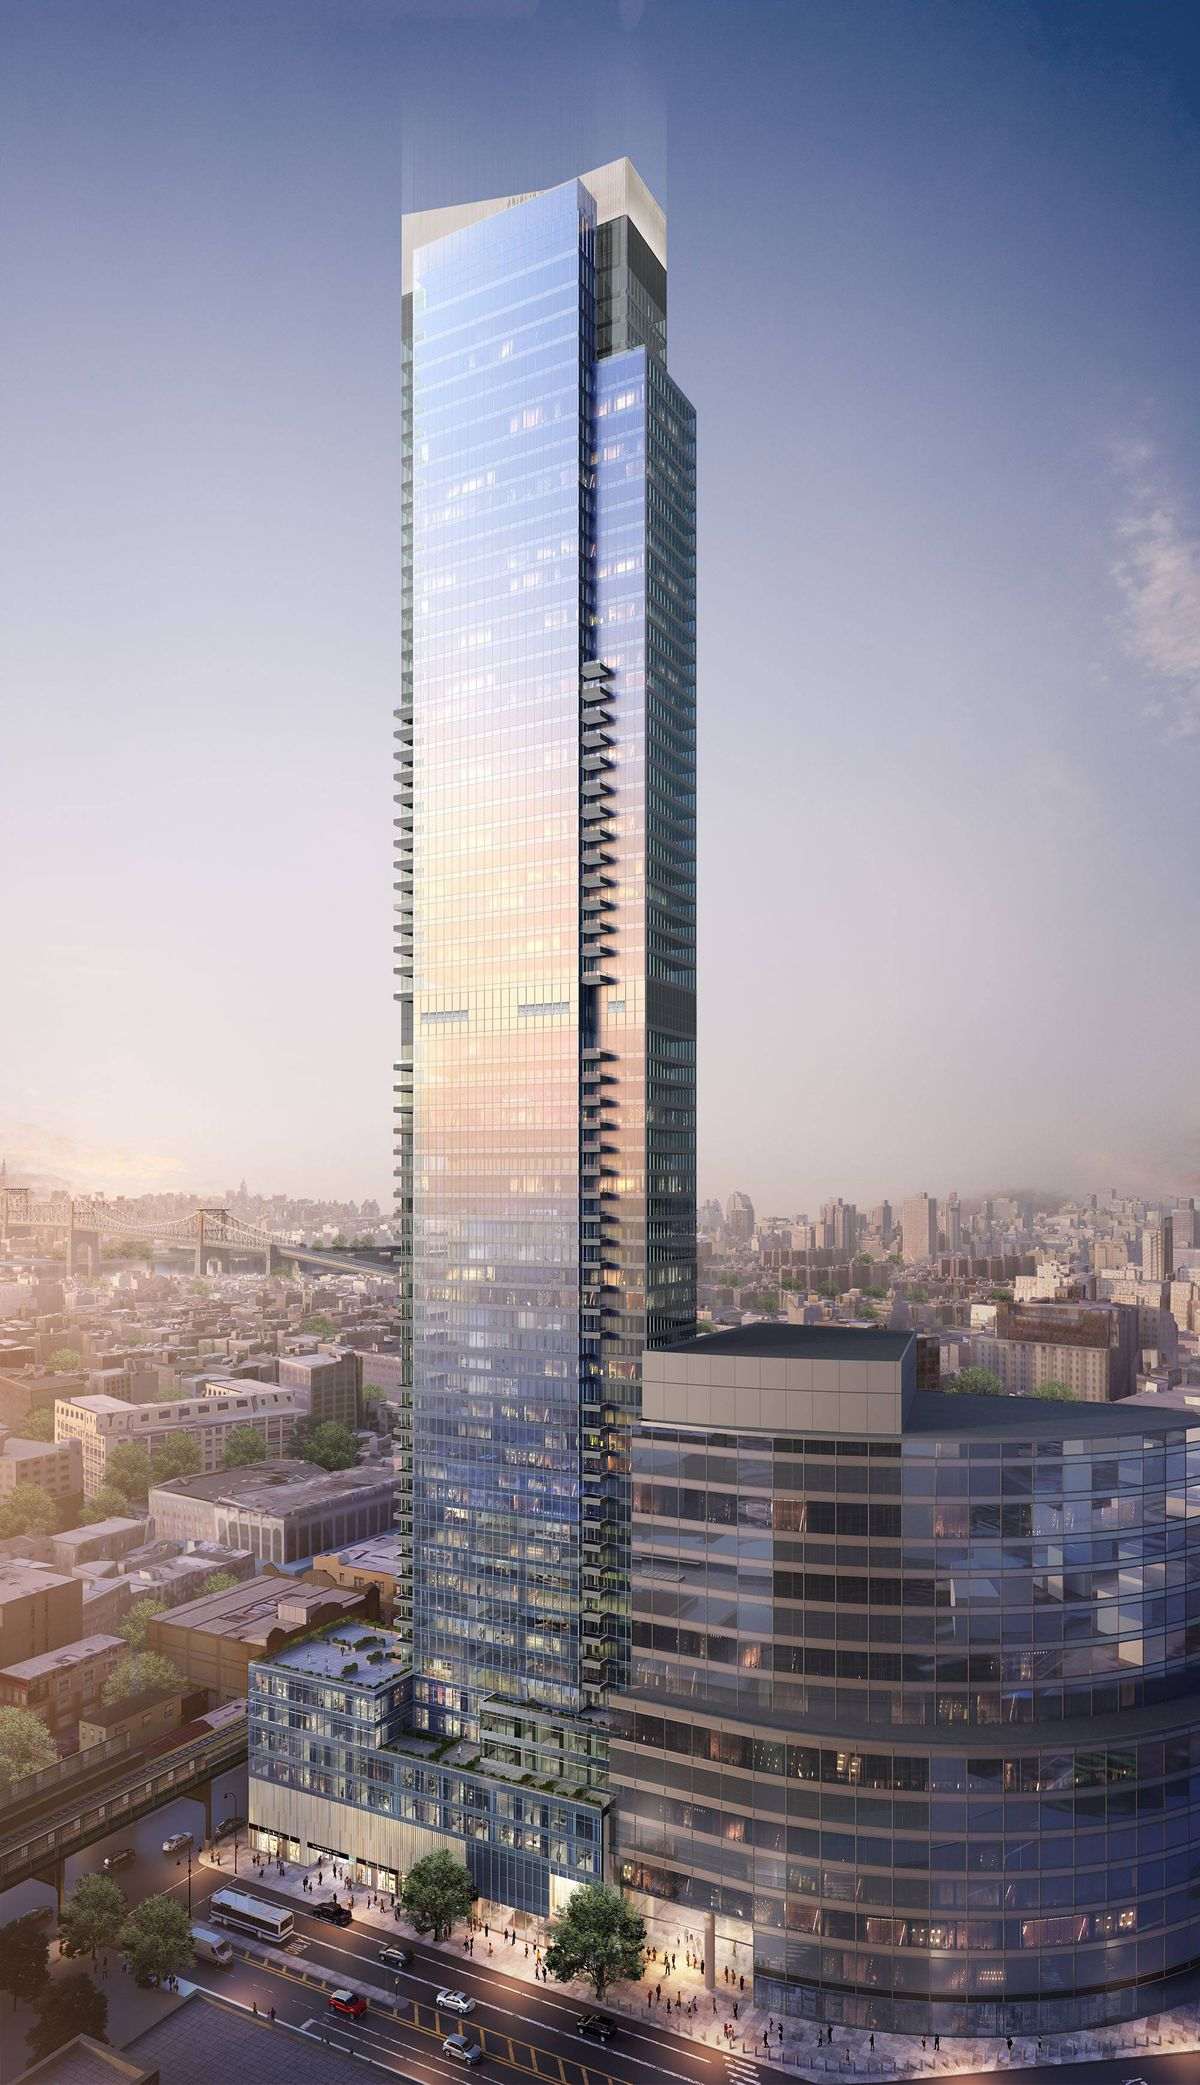 Queens's tallest tower shrinks by 200 feet - Curbed NY